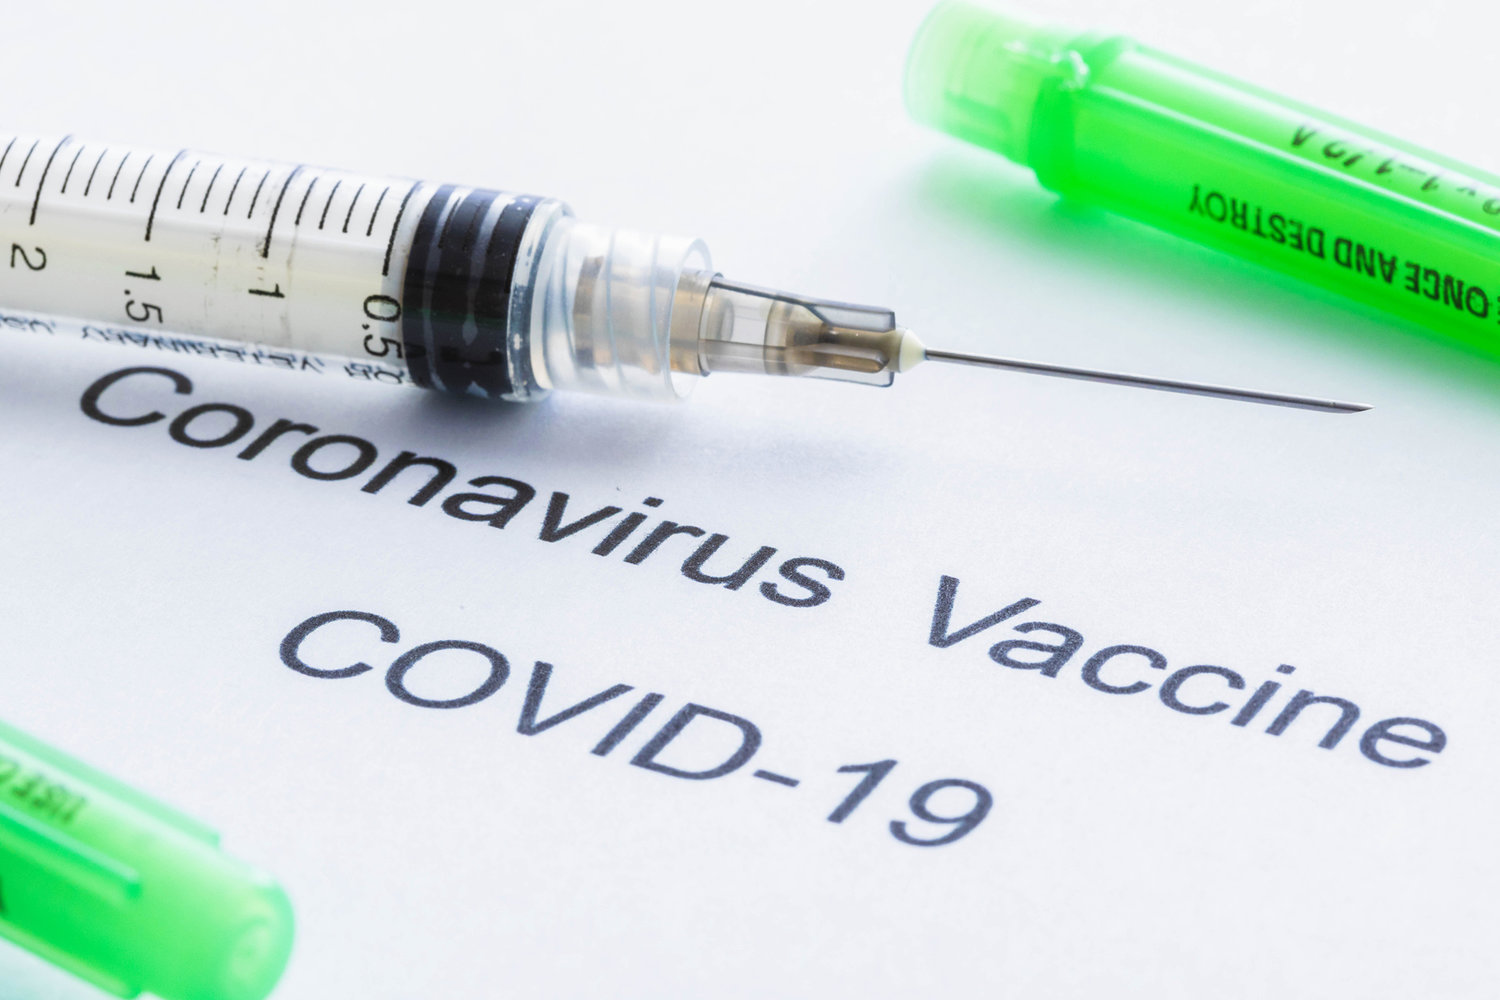 This week, the Centers for Disease Control and Prevention issued a statement suggesting that all administration of the Johnson & Johnson COVID-19